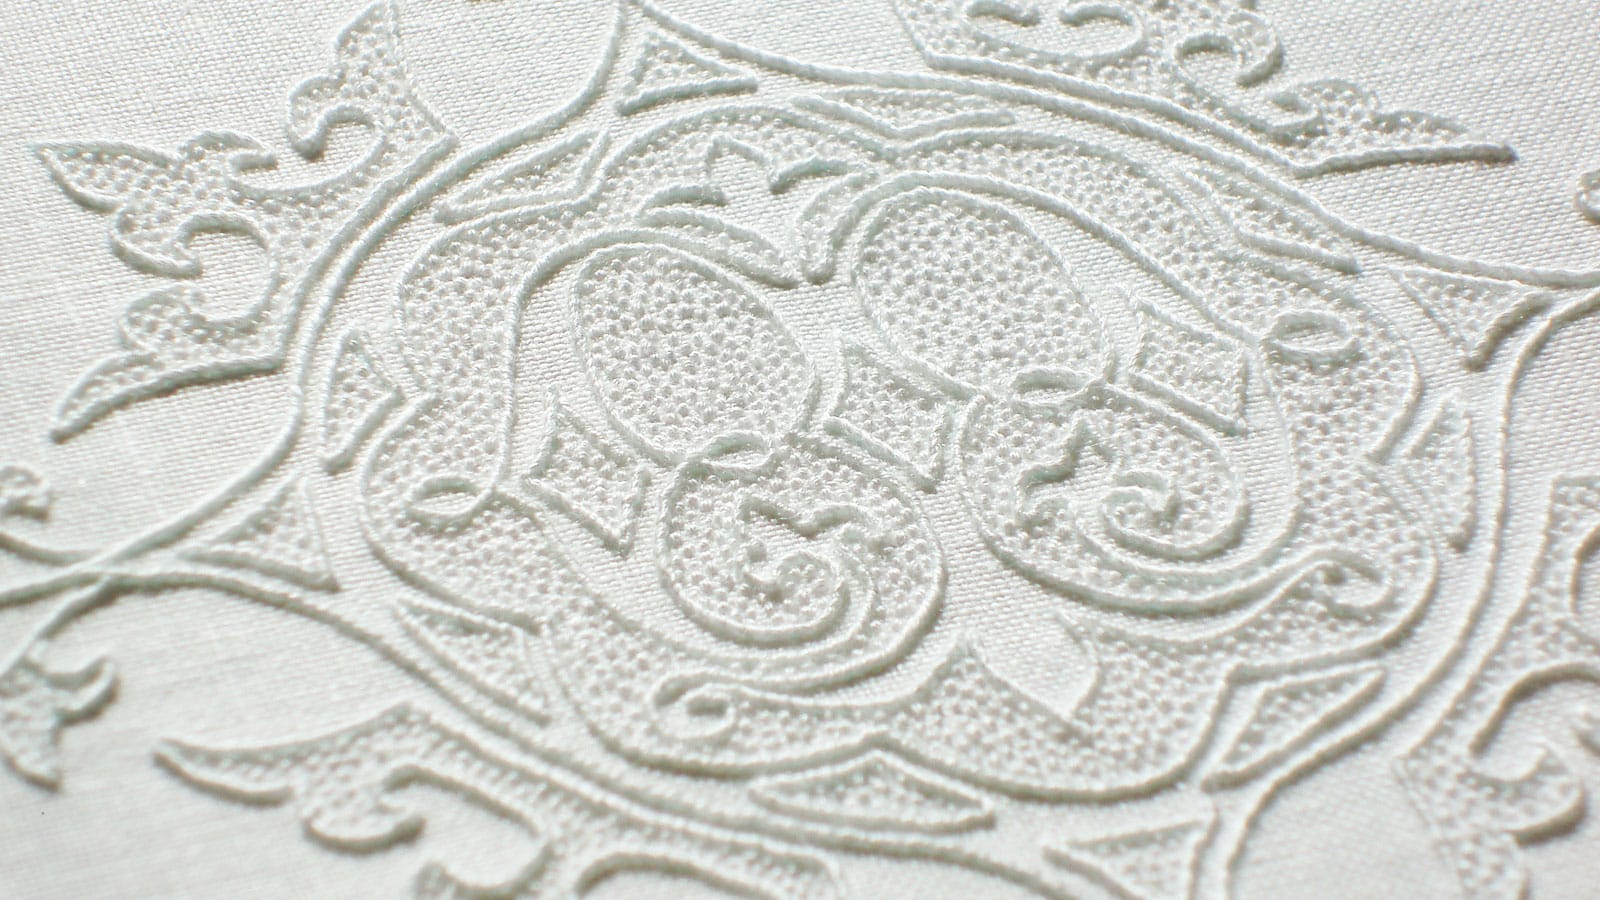 How To Design Embroidery Patterns By Hand Needlenthread Tips Tricks And Great Resources For Hand Embroidery